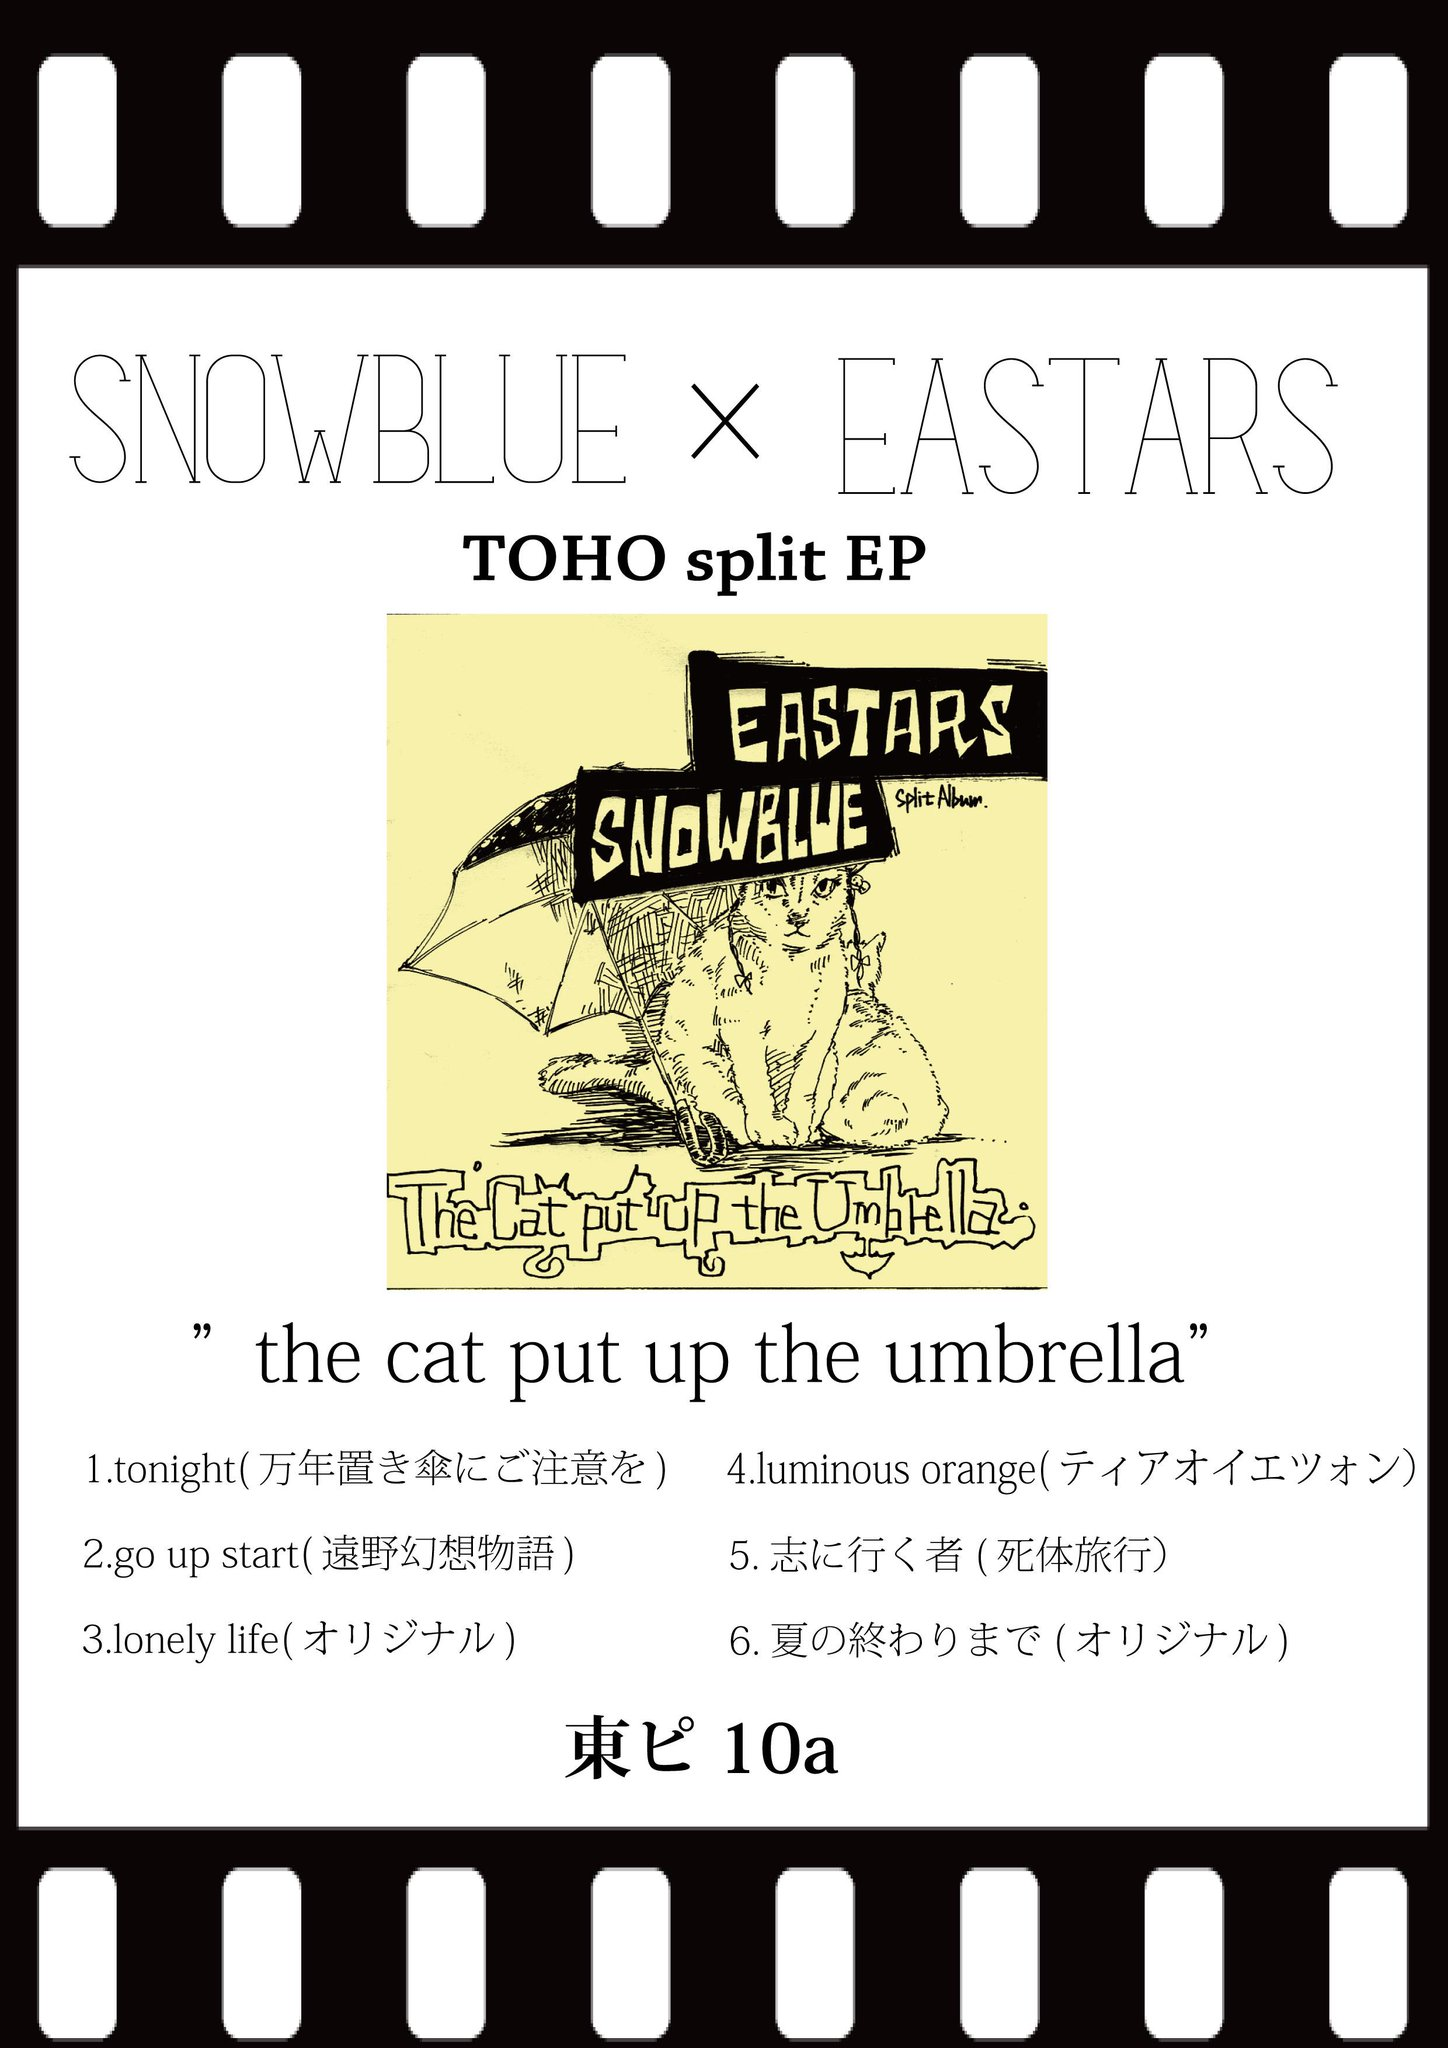 "2日目 東ピ10a  EASTARS SNOWBLUE  ""the cat put up the umbrella"" 6曲入 300円  試聴→http://t.co/h3Q15FyDxt http://t.co/4ePkGjbqrv http://t.co/q6WaUQ4nbX"